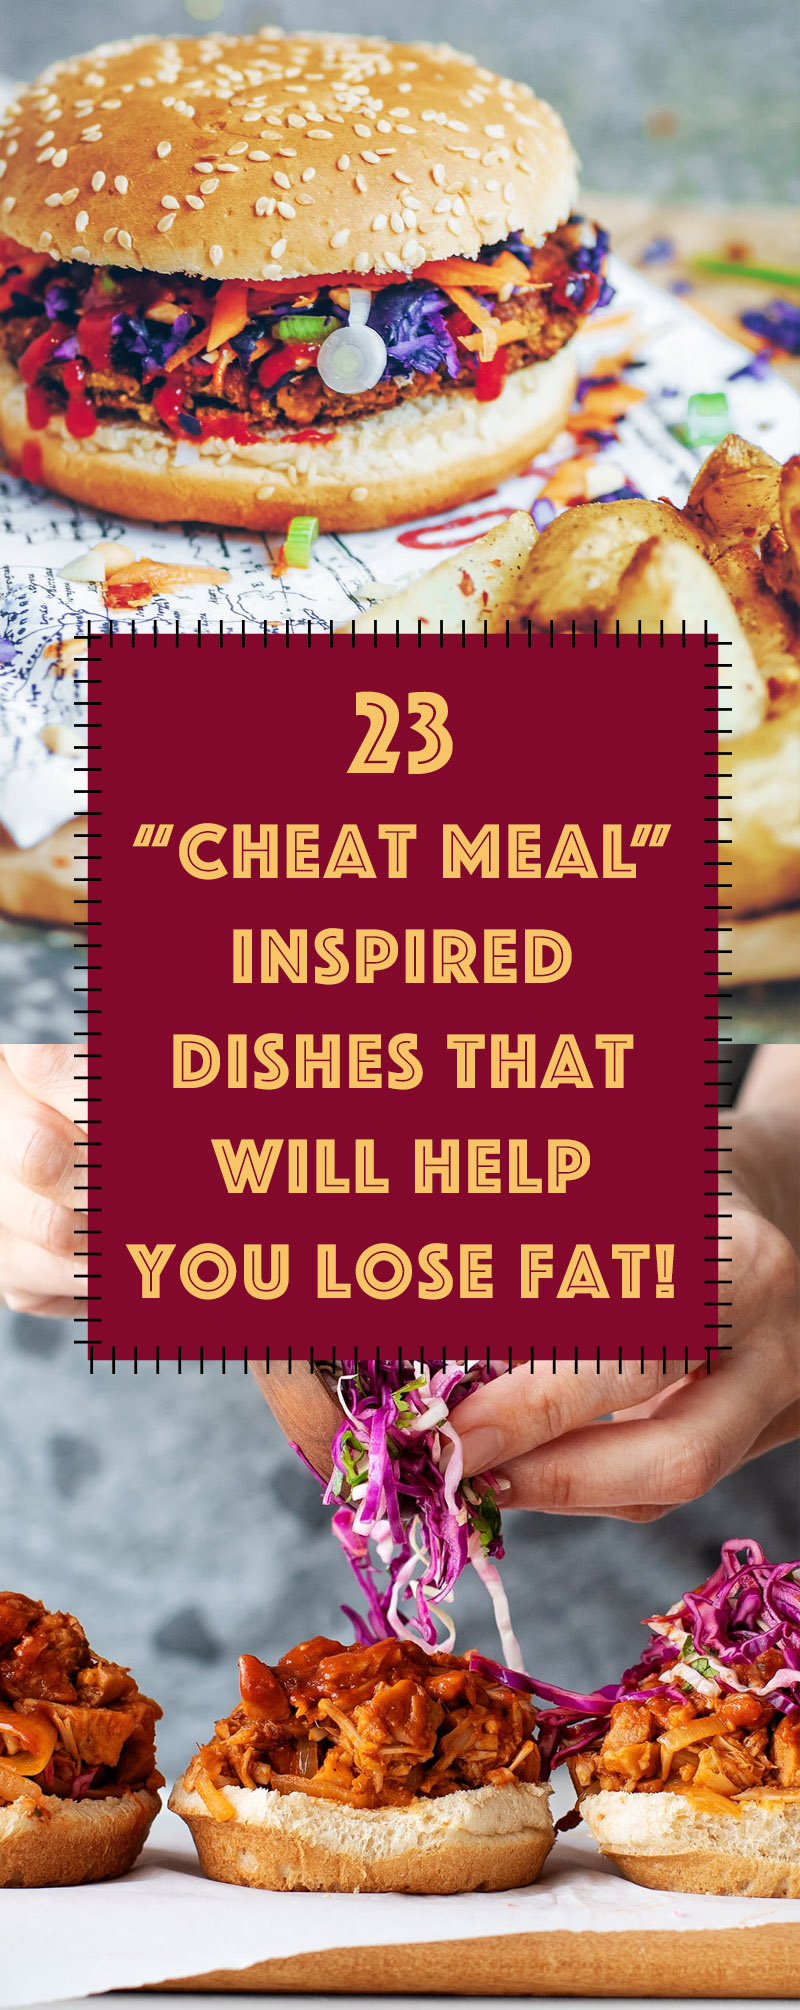 Can Cheat Meals Help You Lose Weight? - YouTube